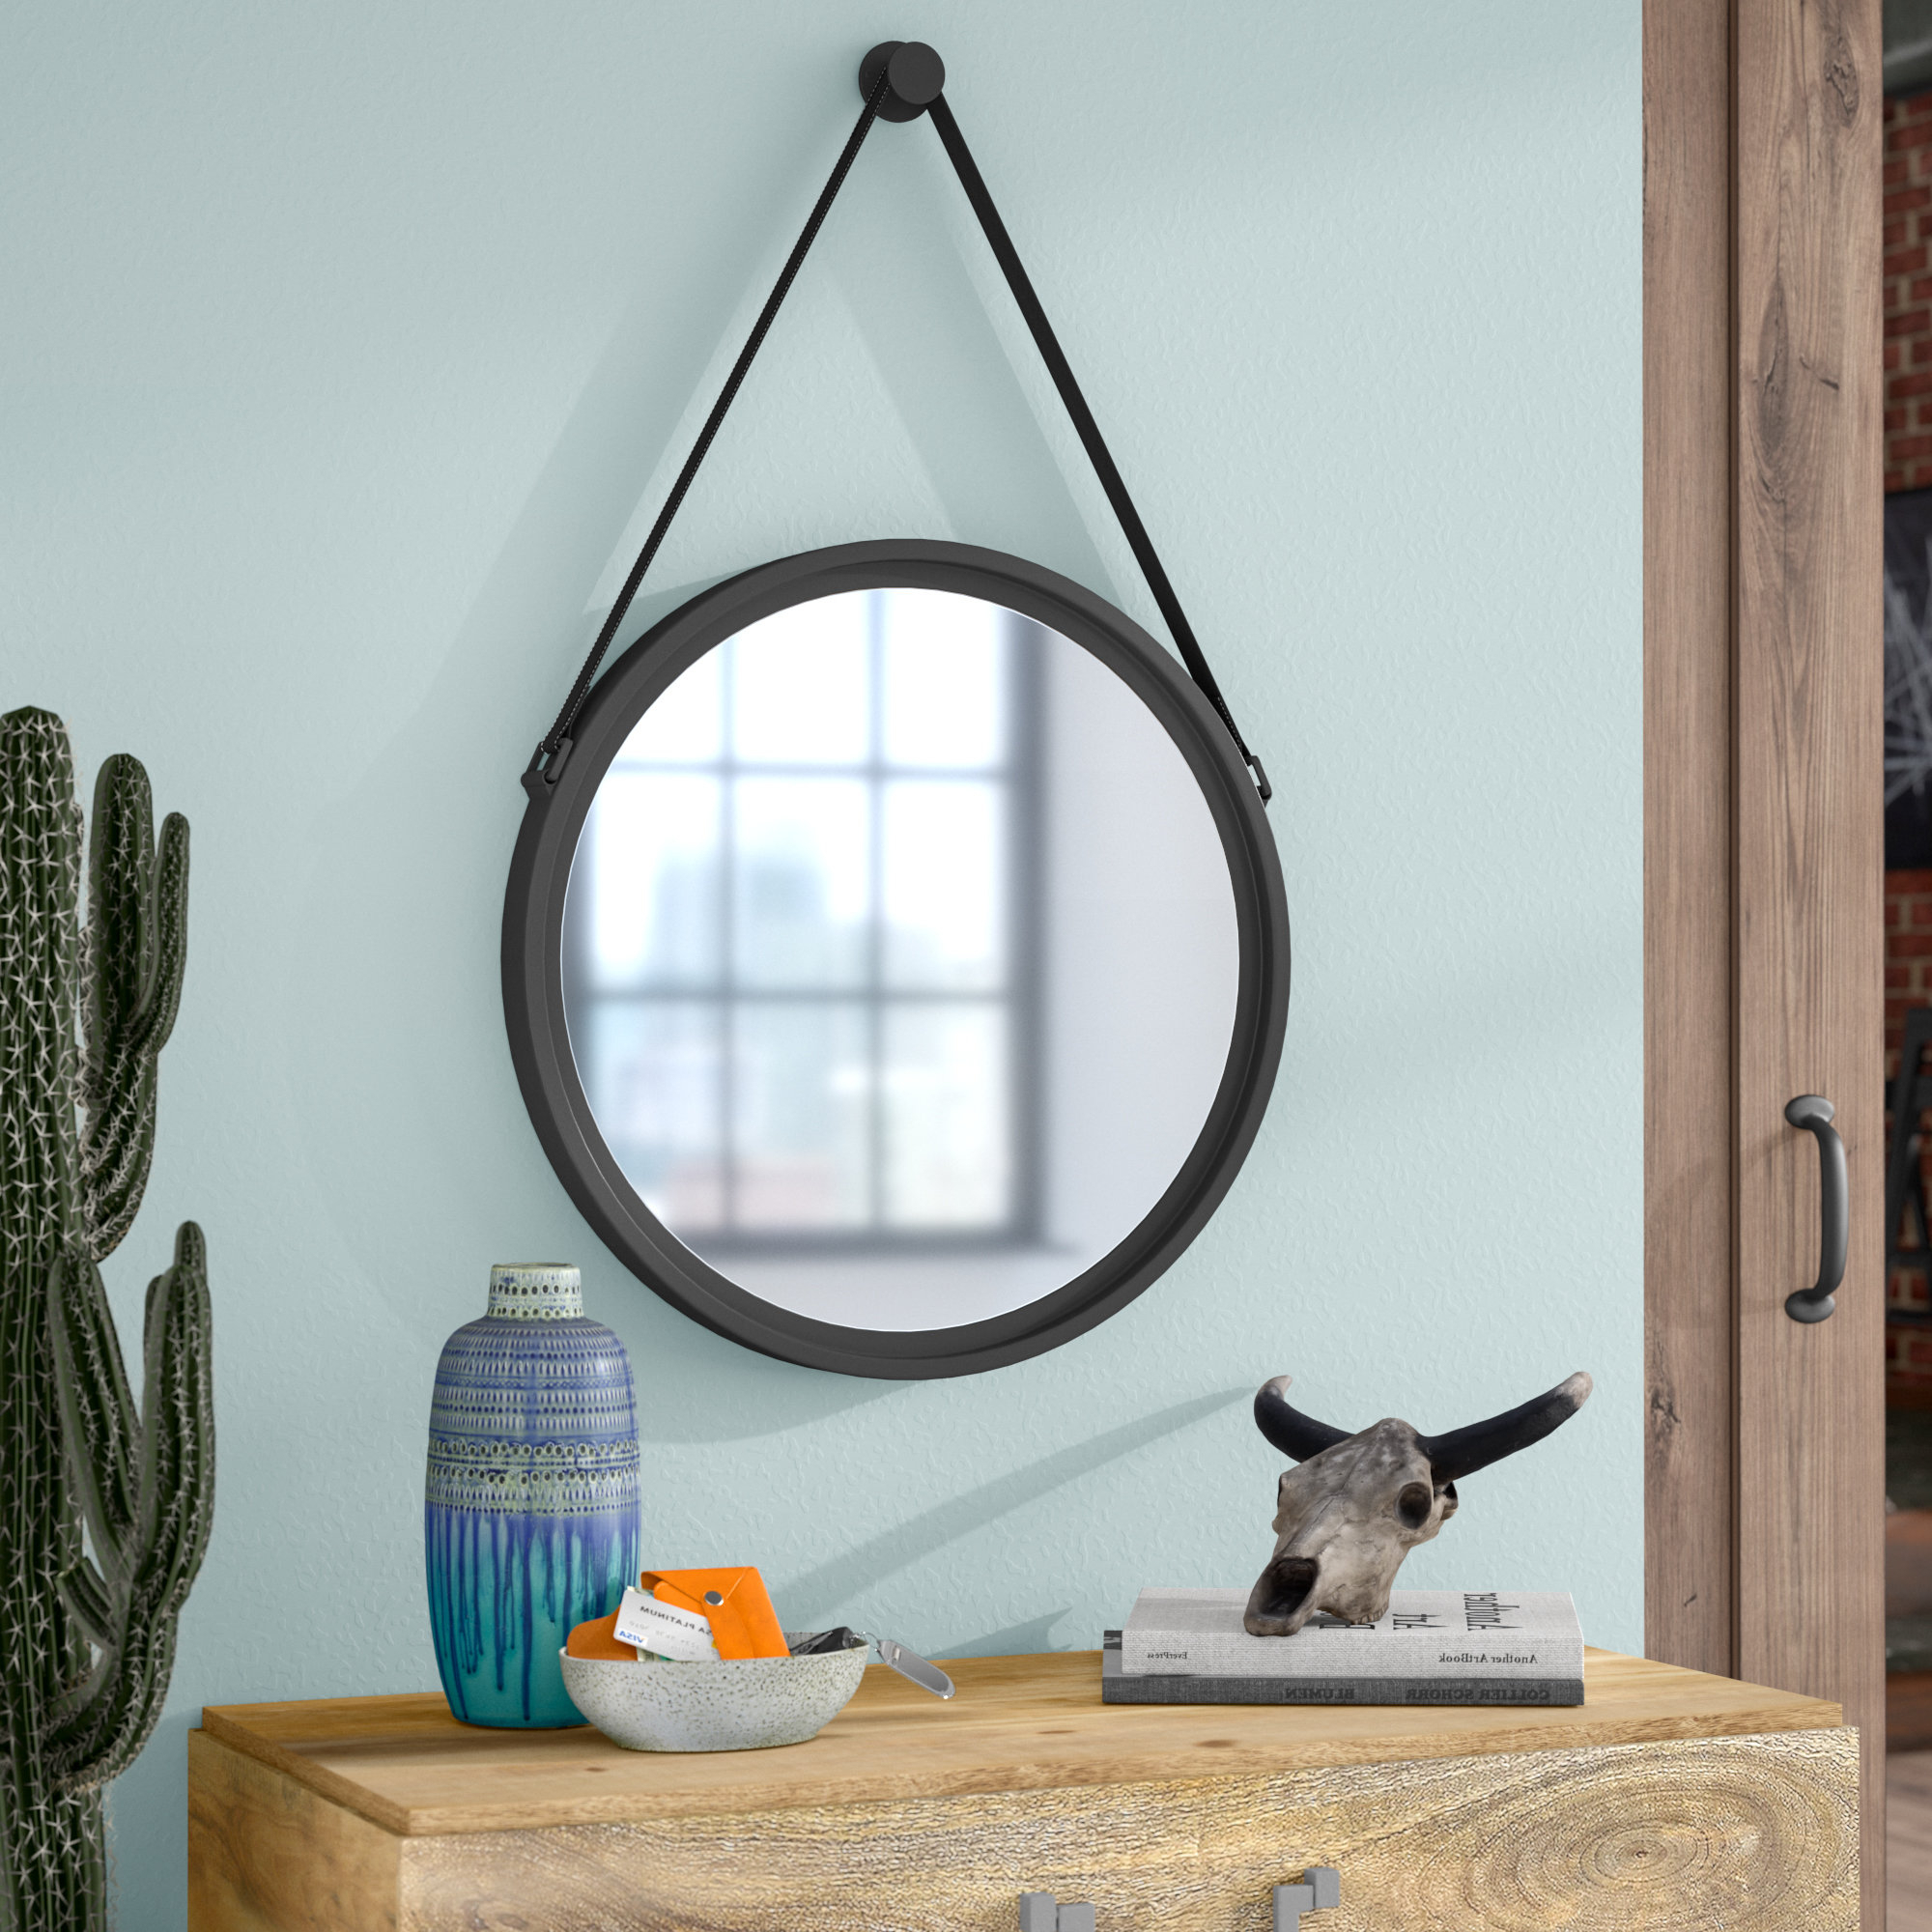 Round Metal Wall Mirror Pertaining To Most Recently Released Leather Wall Mirrors (Gallery 16 of 20)